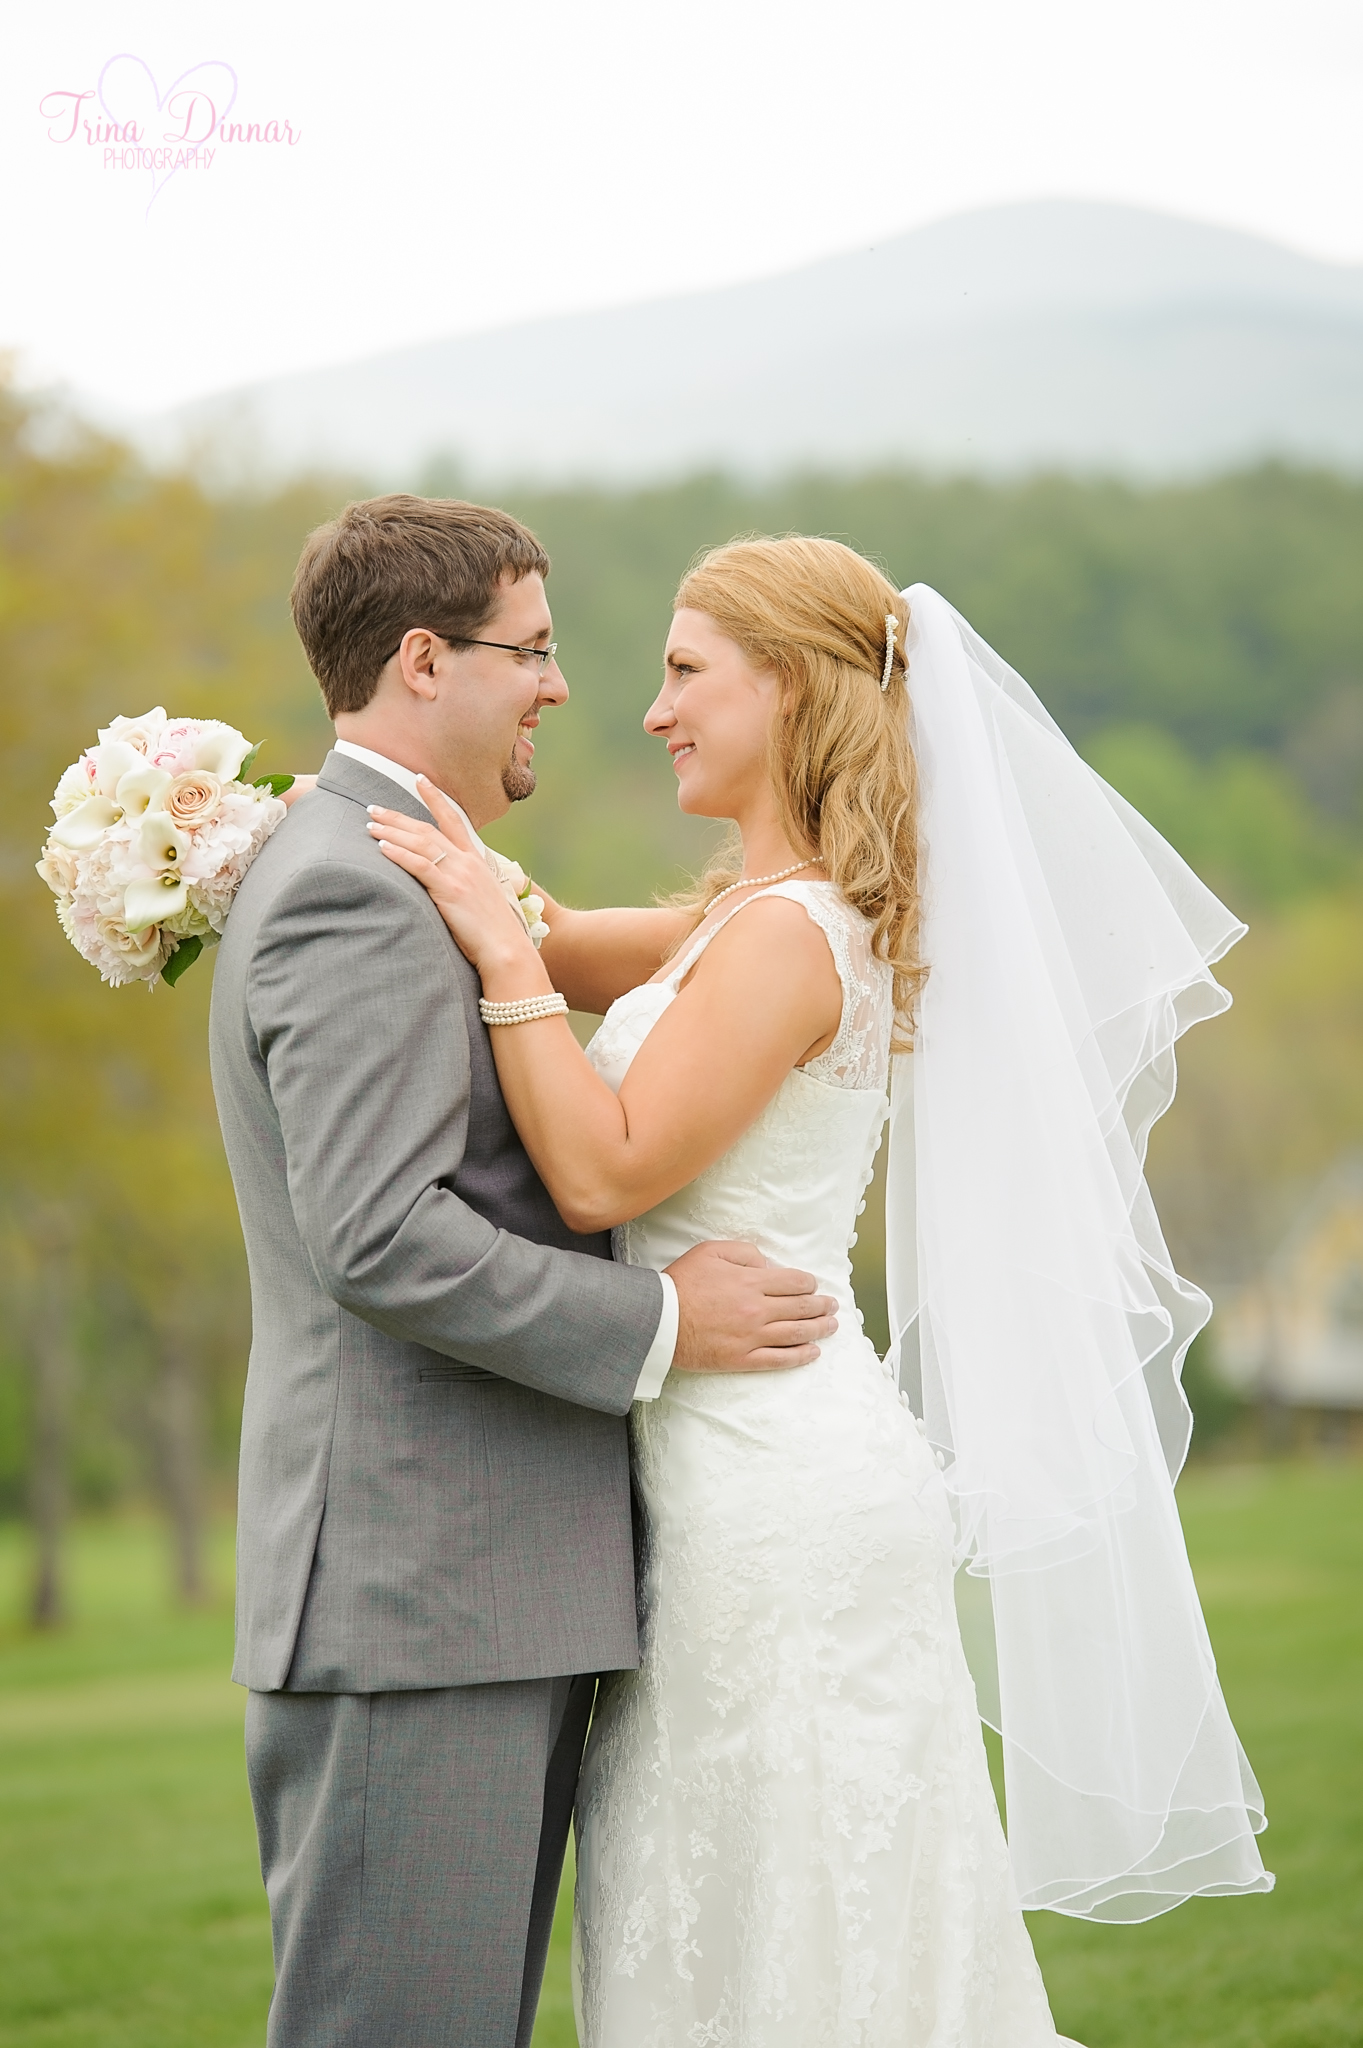 Amy and Eric enjoy their wedding on the golf course of the Bethel Inn